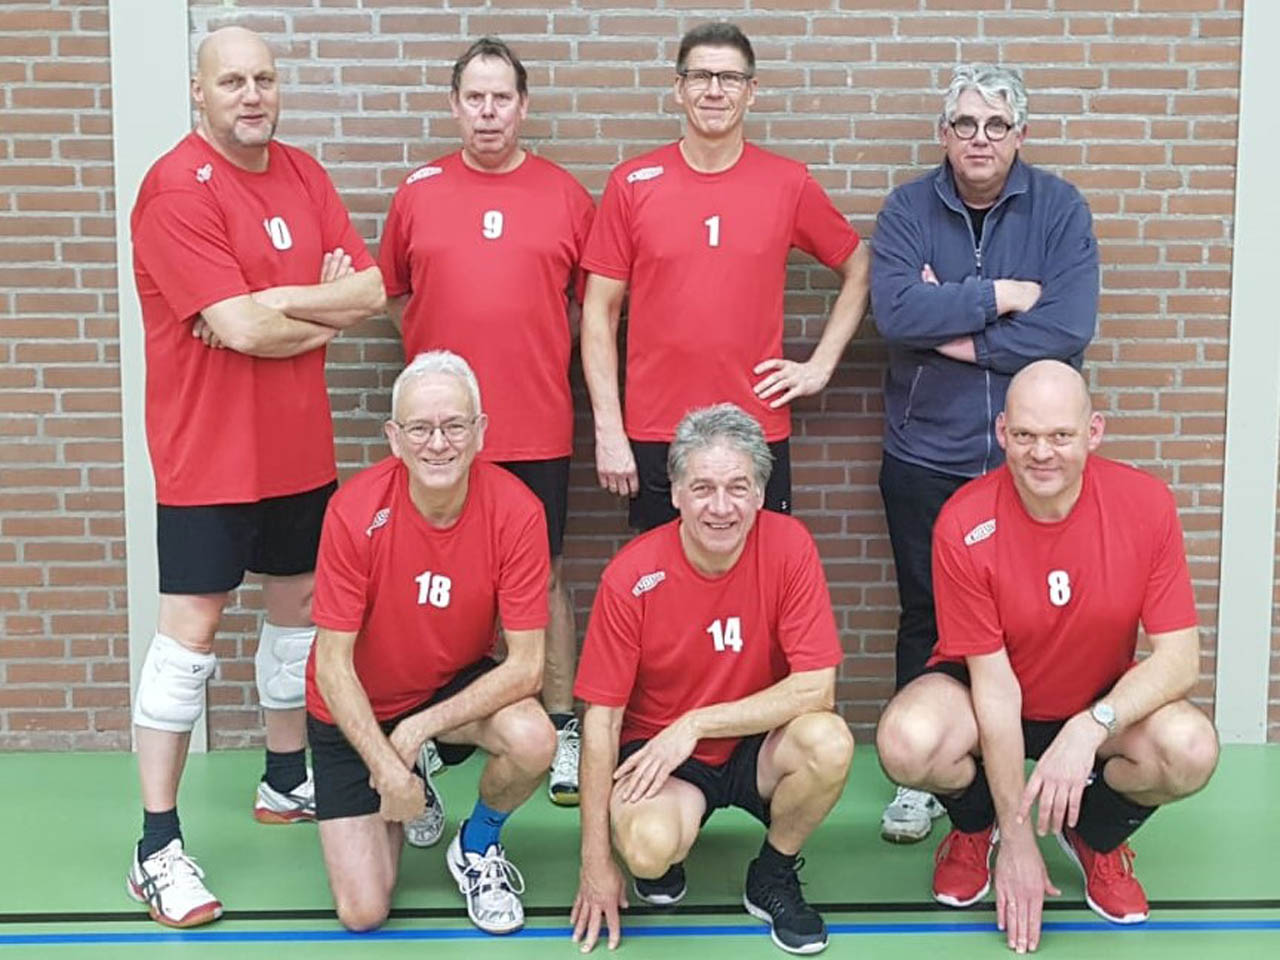 Gemini Borculo - Team Recreanten Heren 2